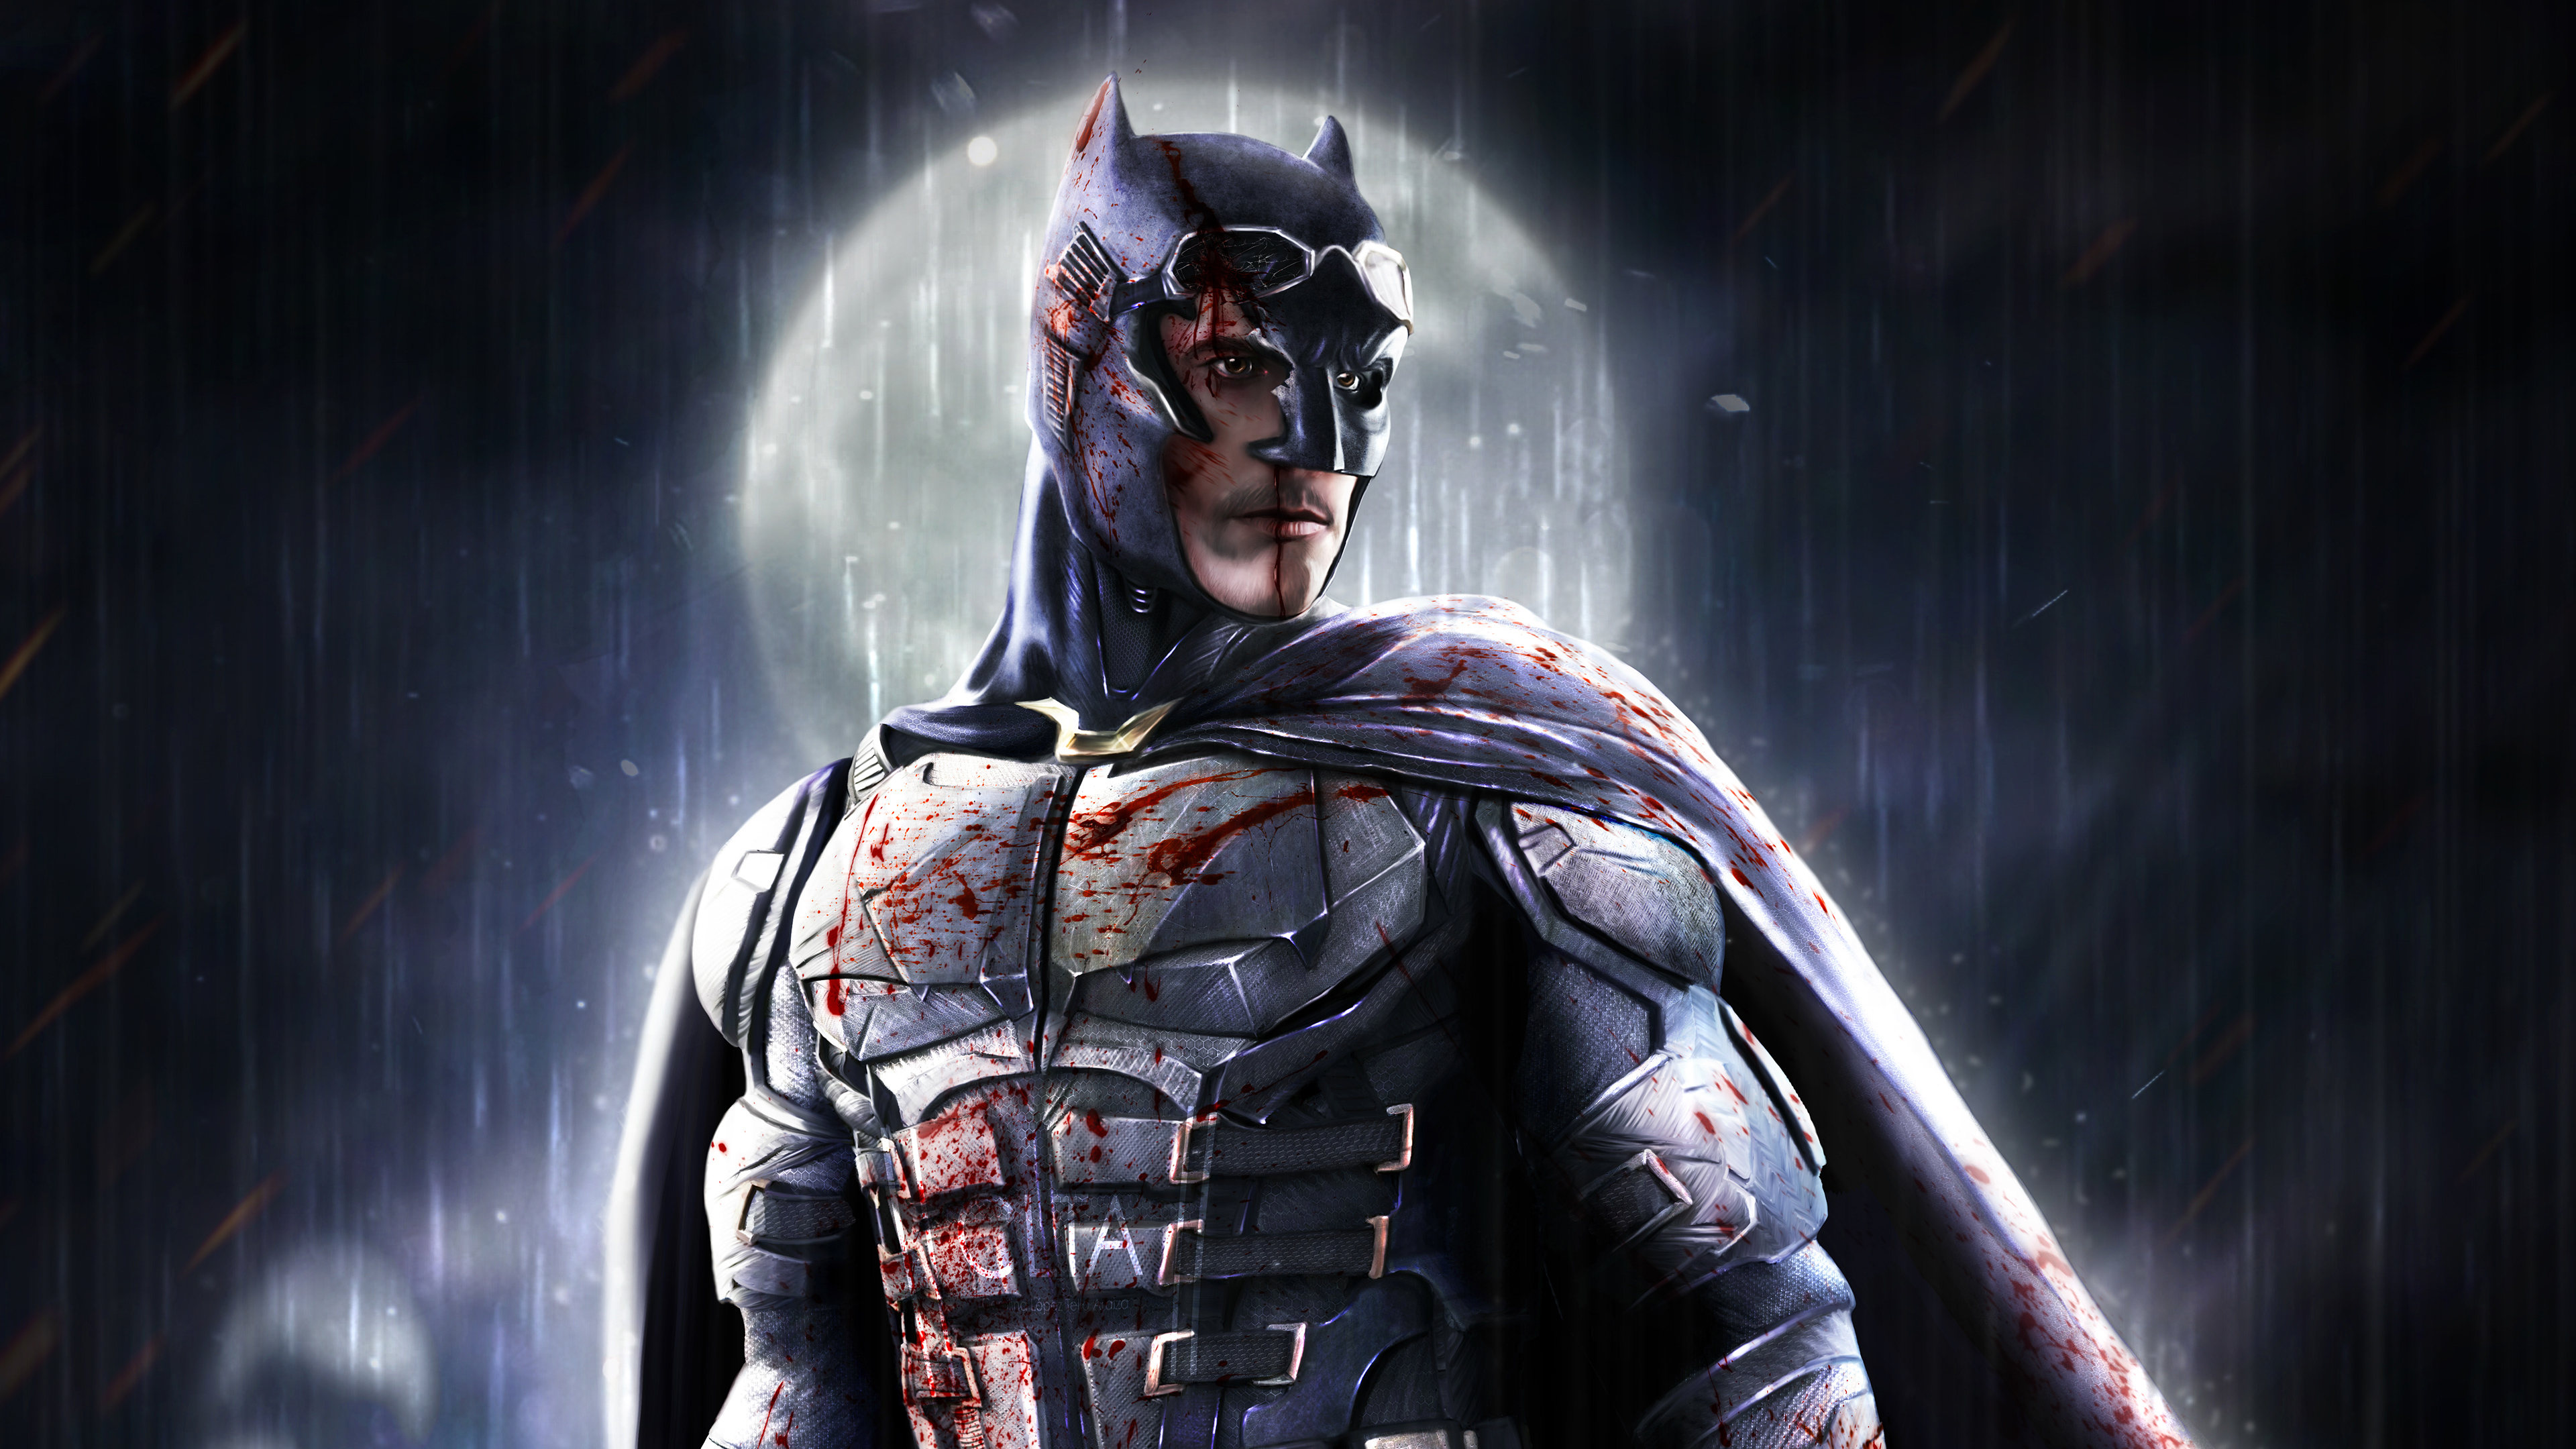 batman in the night 1538786568 - Batman In The Night - superheroes wallpapers, hd-wallpapers, digital art wallpapers, behance wallpapers, batman wallpapers, artwork wallpapers, artist wallpapers, 4k-wallpapers